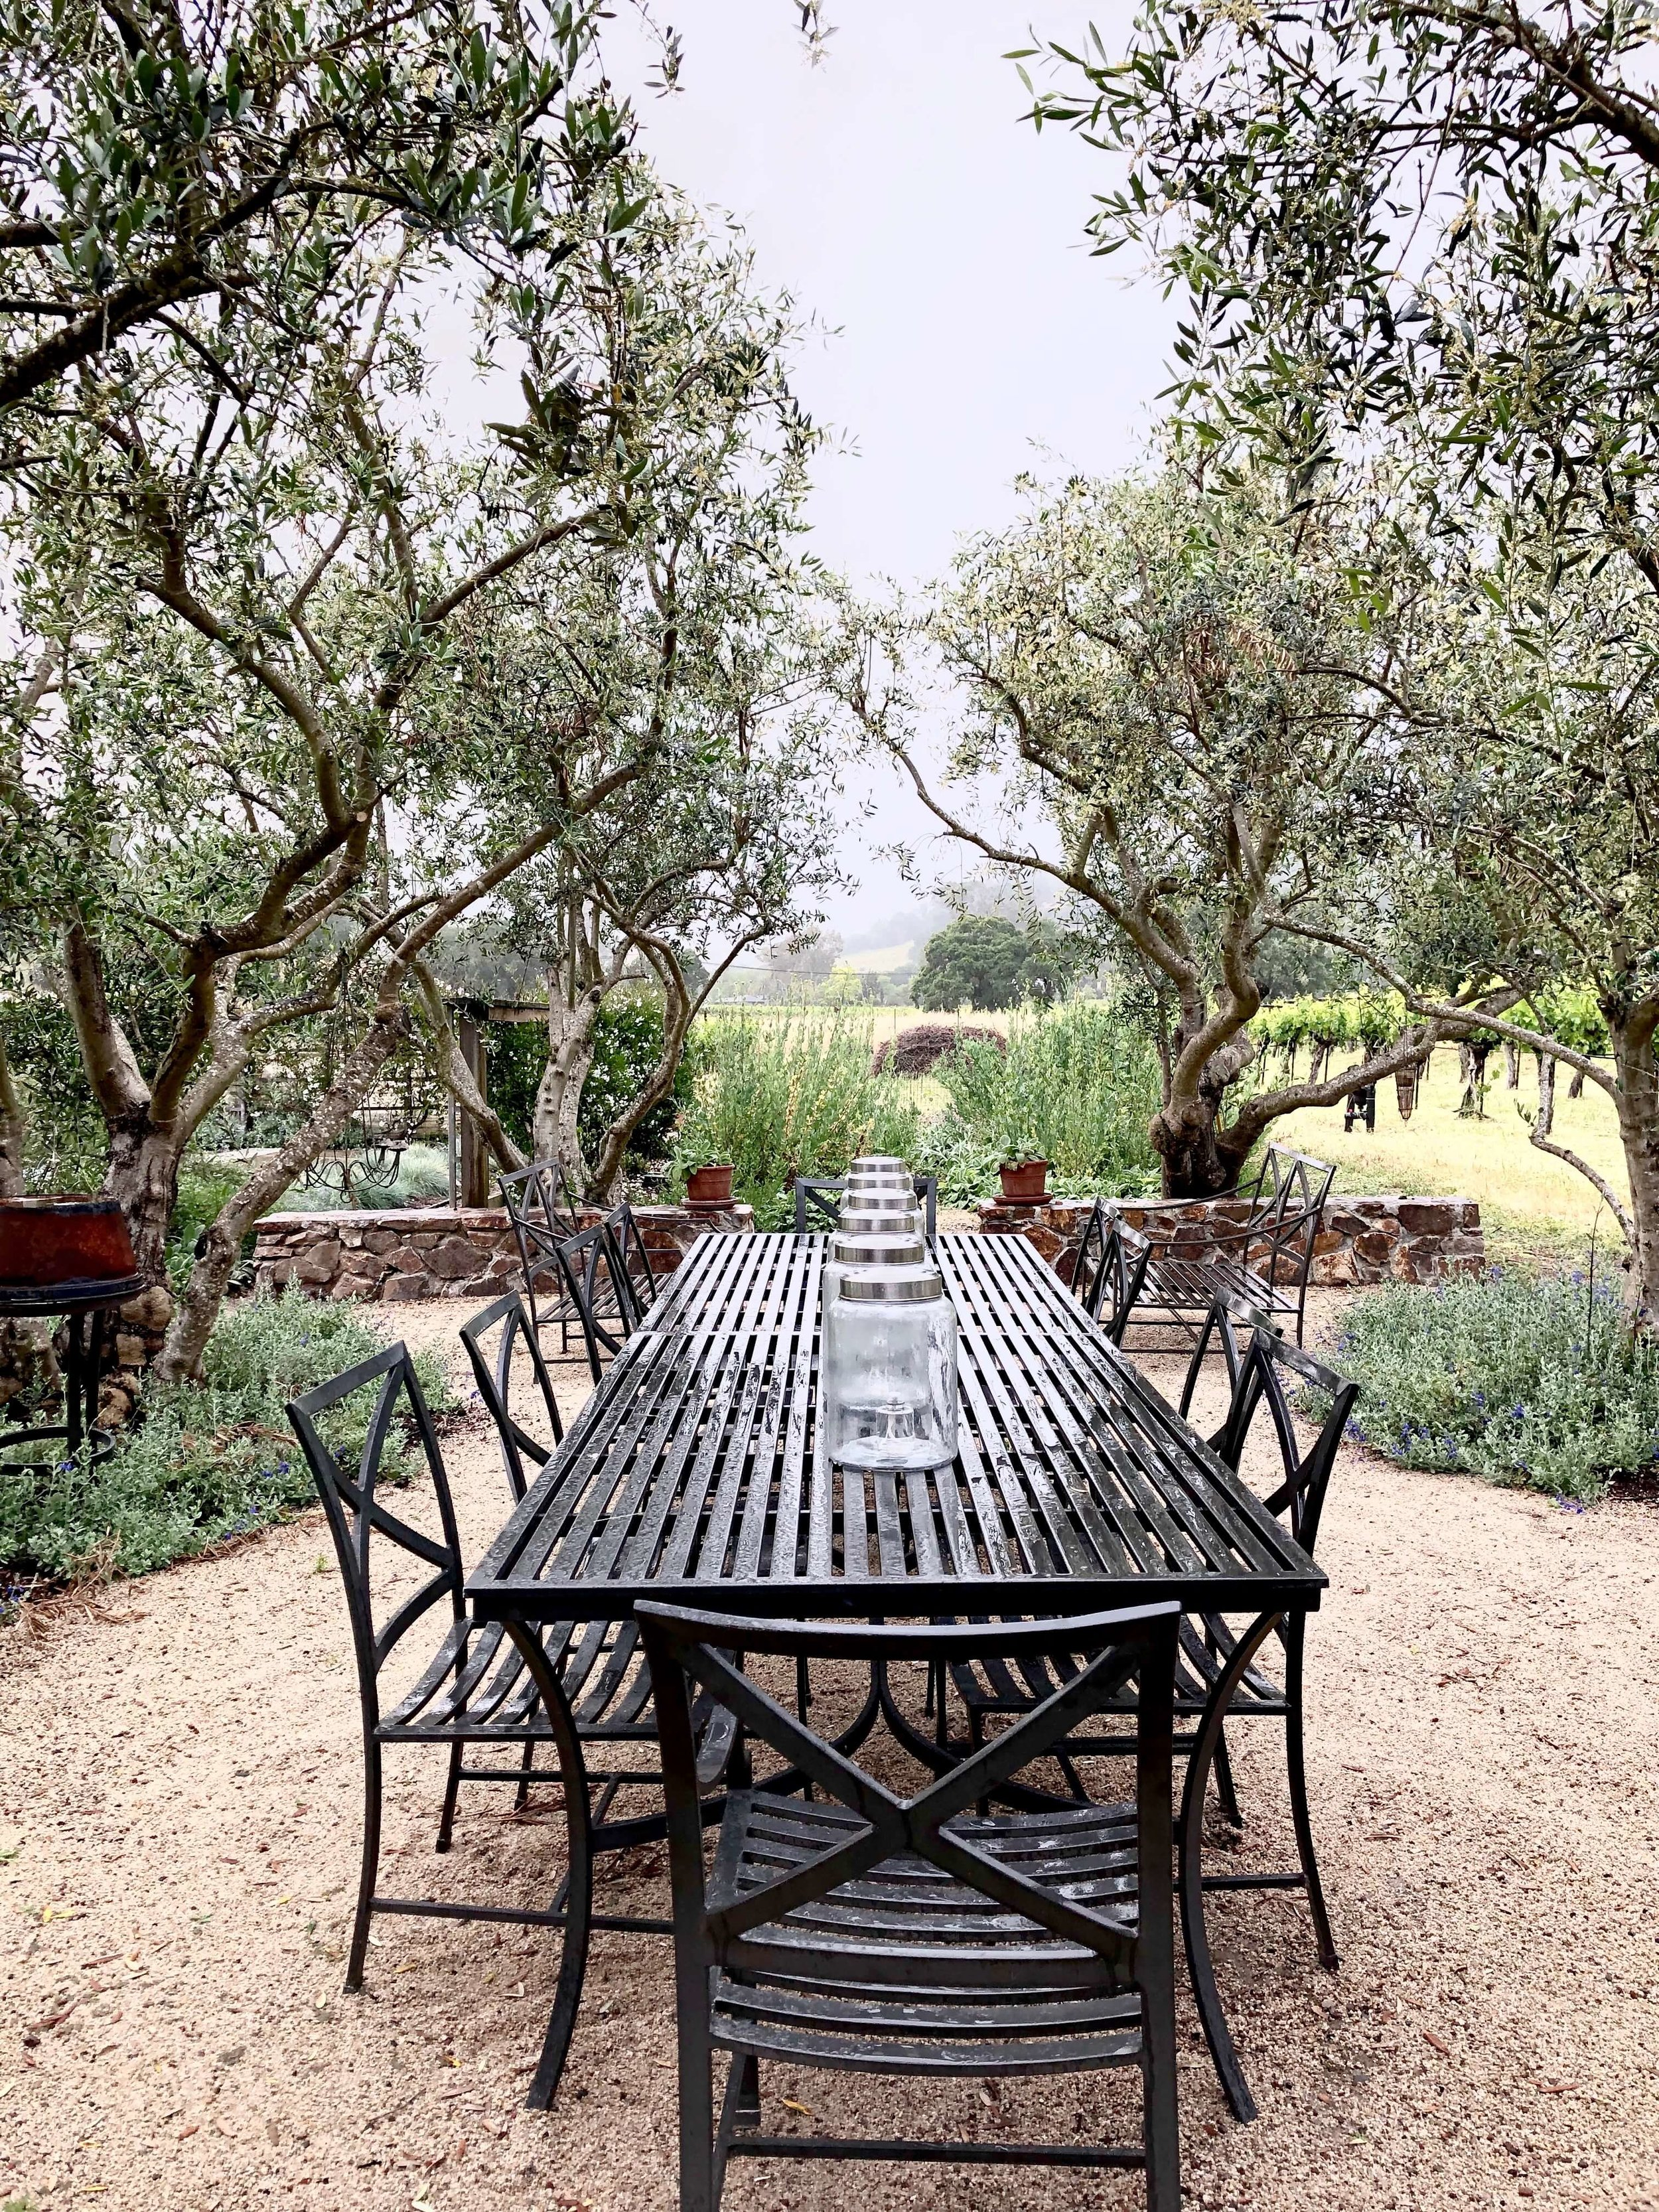 Large outdoor dining area with stone fireplace and barbecue, even a pizza oven! Sonoma Airbnb grounds and garden. #airbnb #winecountry